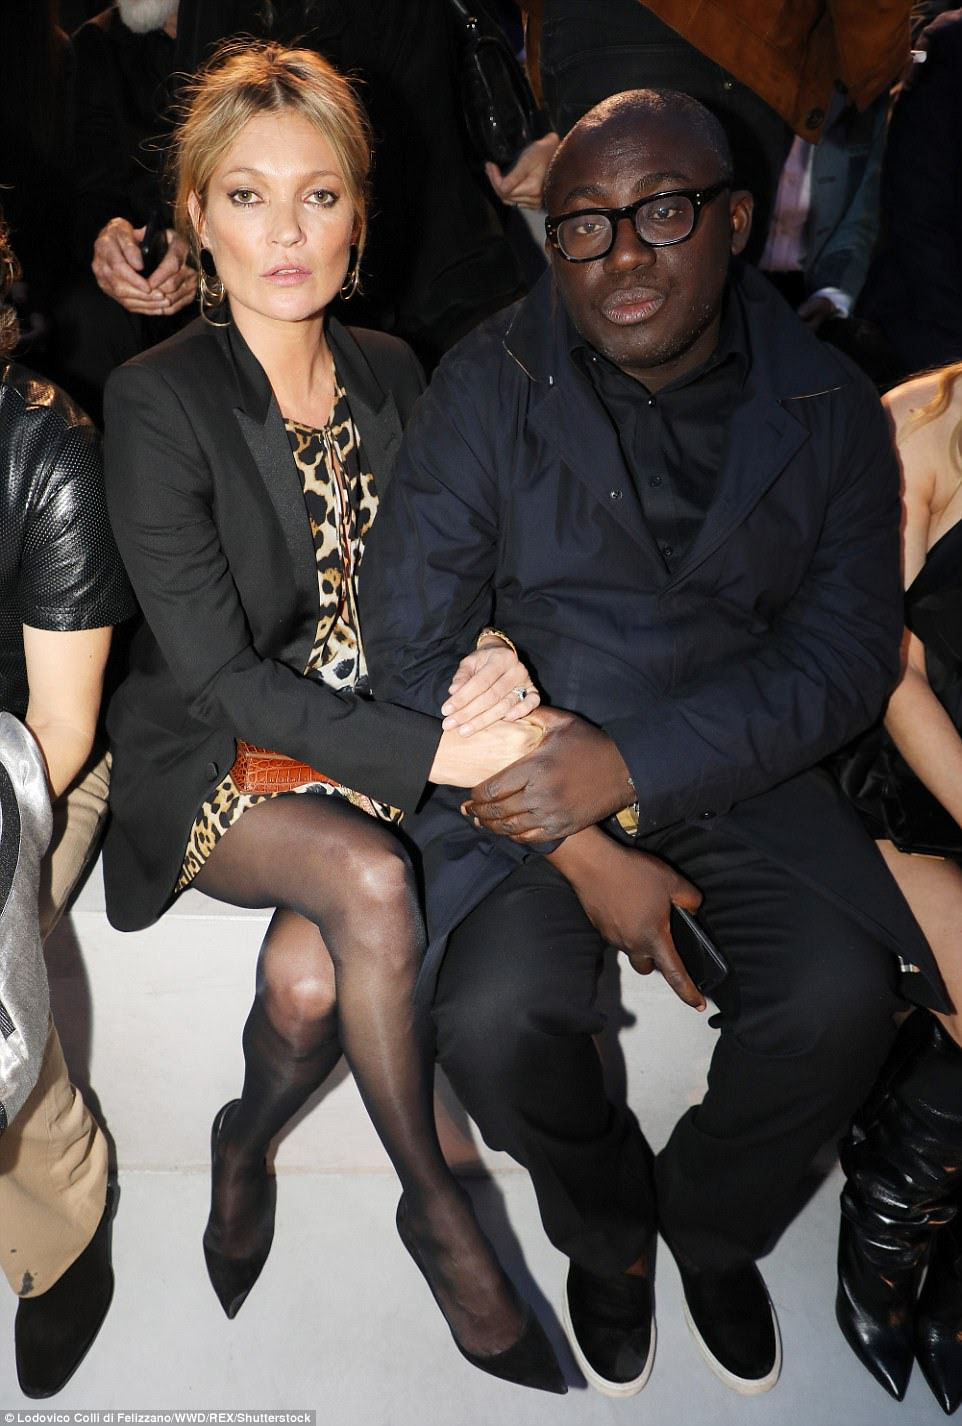 Posing up a storm:Joining proceedings were two of the fashion worlds biggest talents - Kate Moss and her pal Edward Enninful. The 43-year-old fashion great stuck to her tried-and-tested rock chic cool, in a leopard print mini with a bias-cut blazer while the editing supremo opted for classic cool in a crisp and perfectly tailored suit